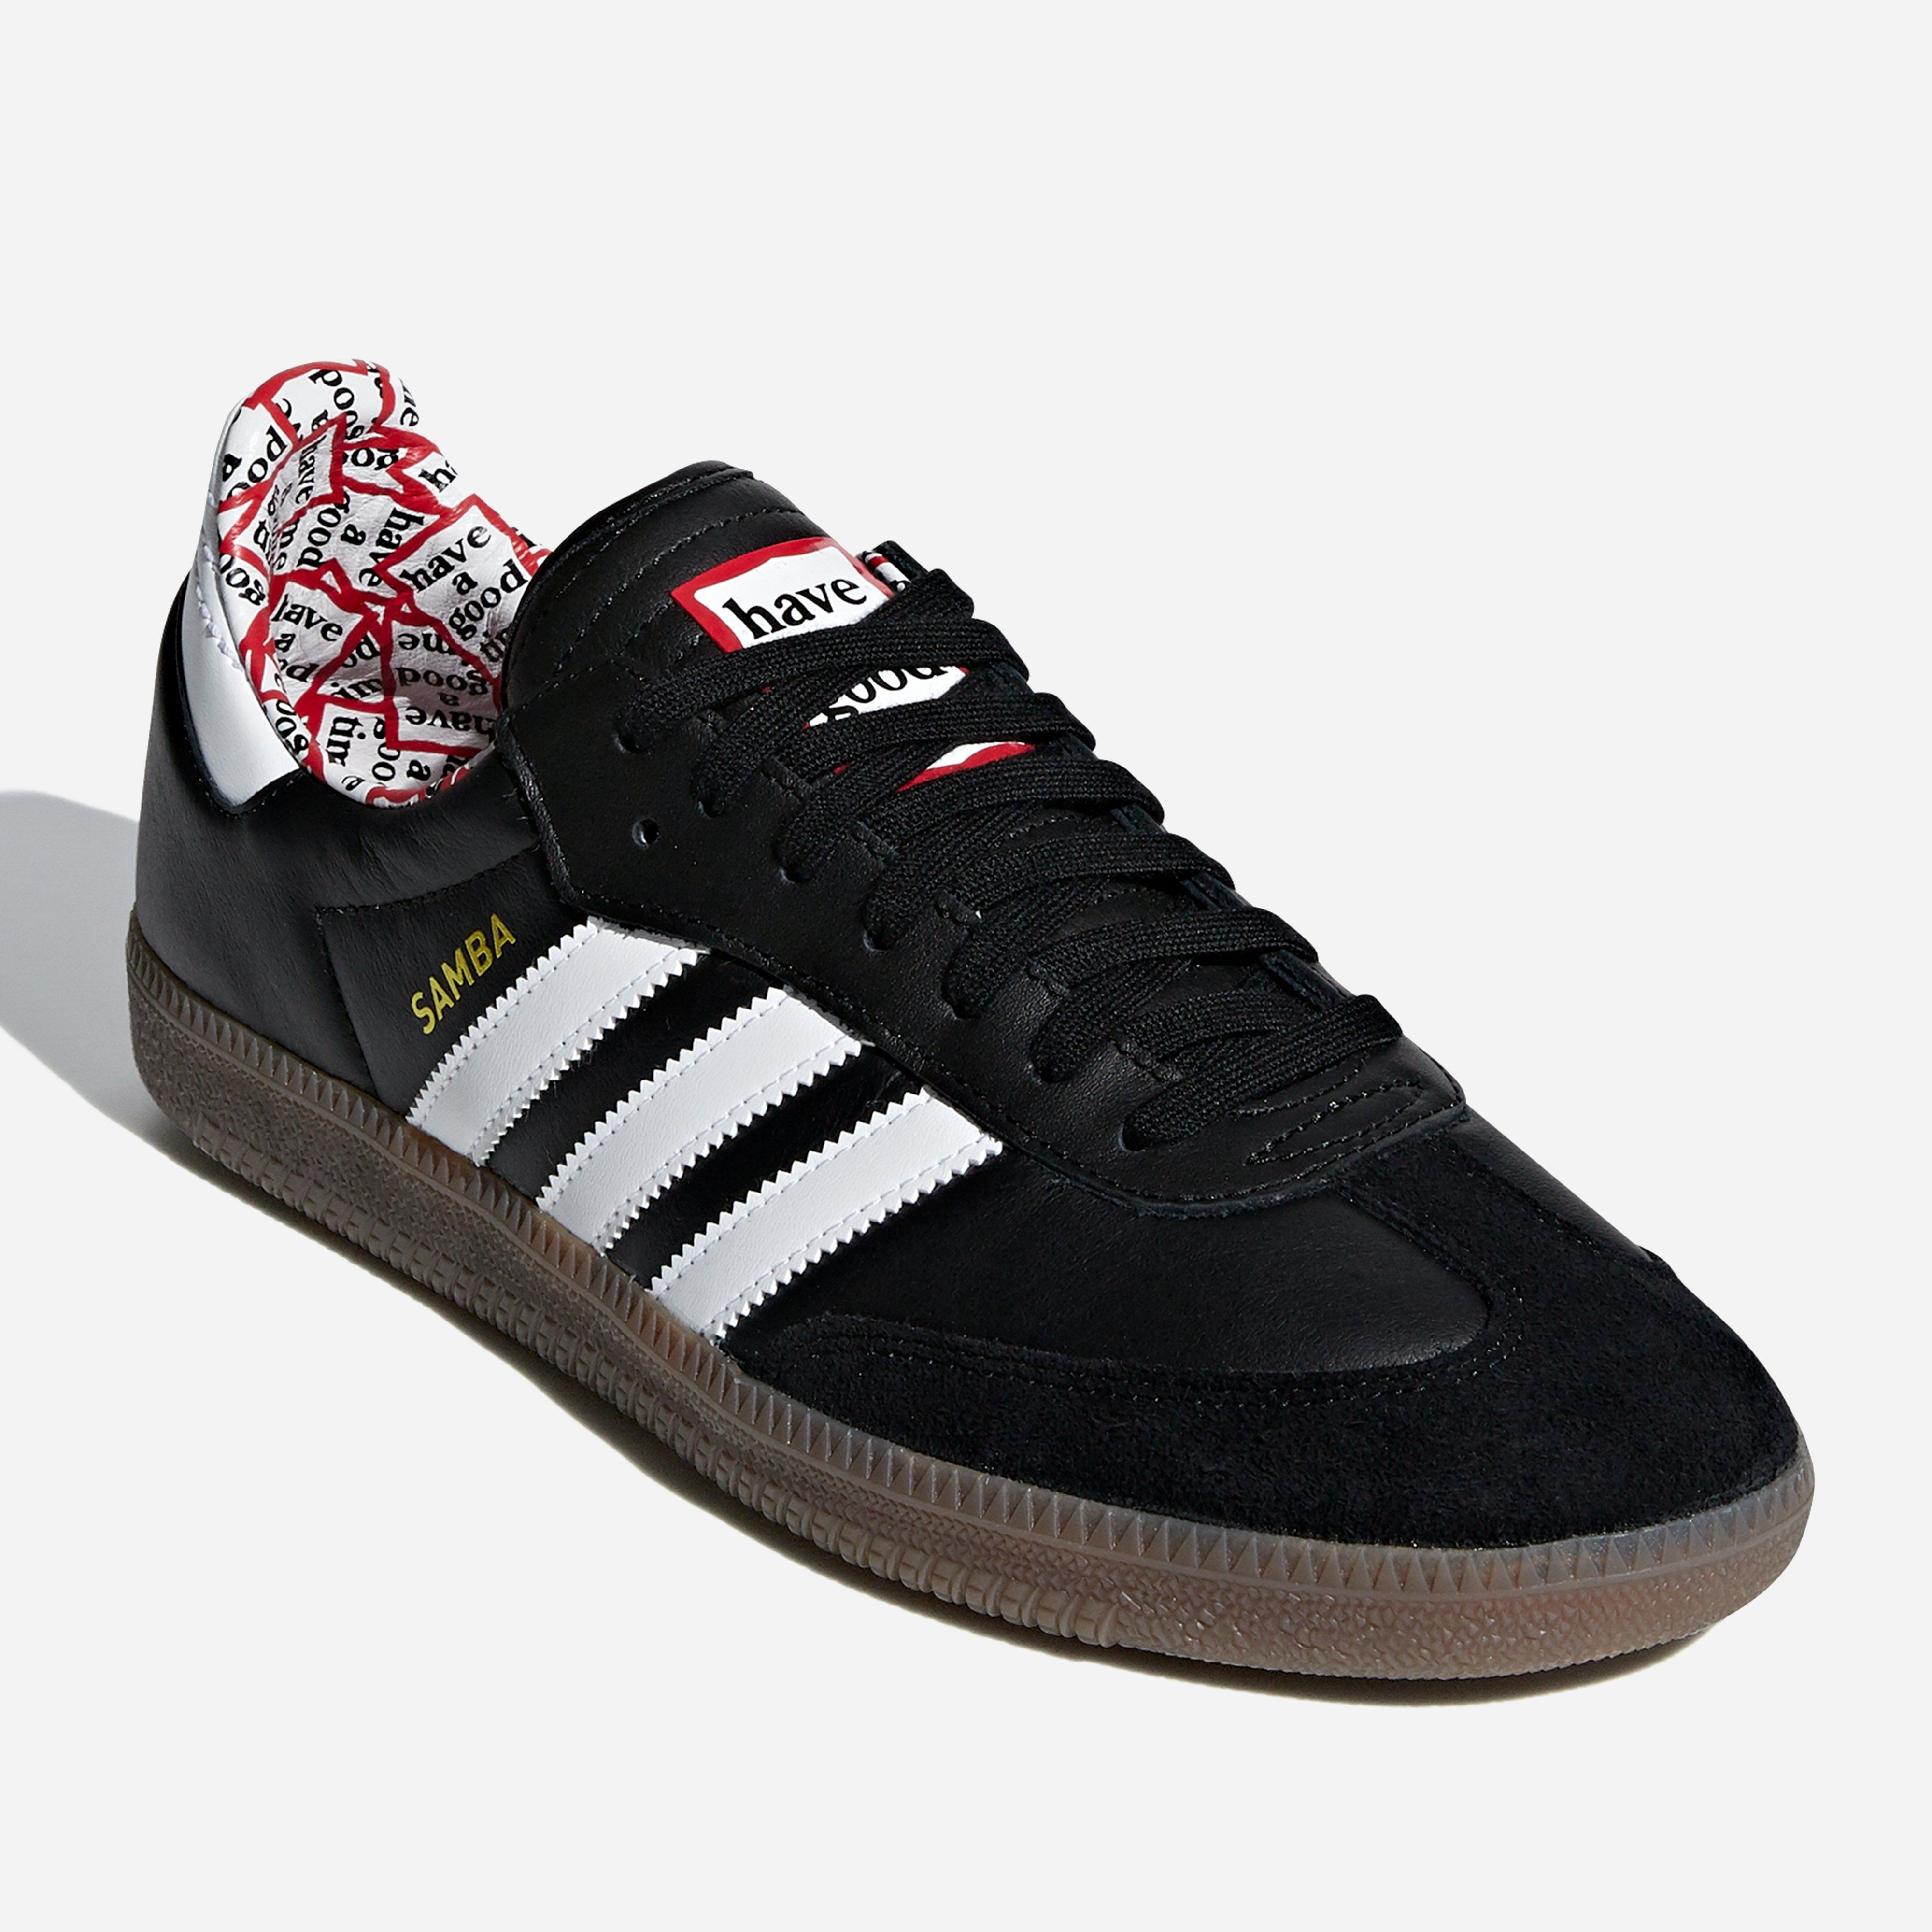 adidas Originals x Have a Good Time Samba